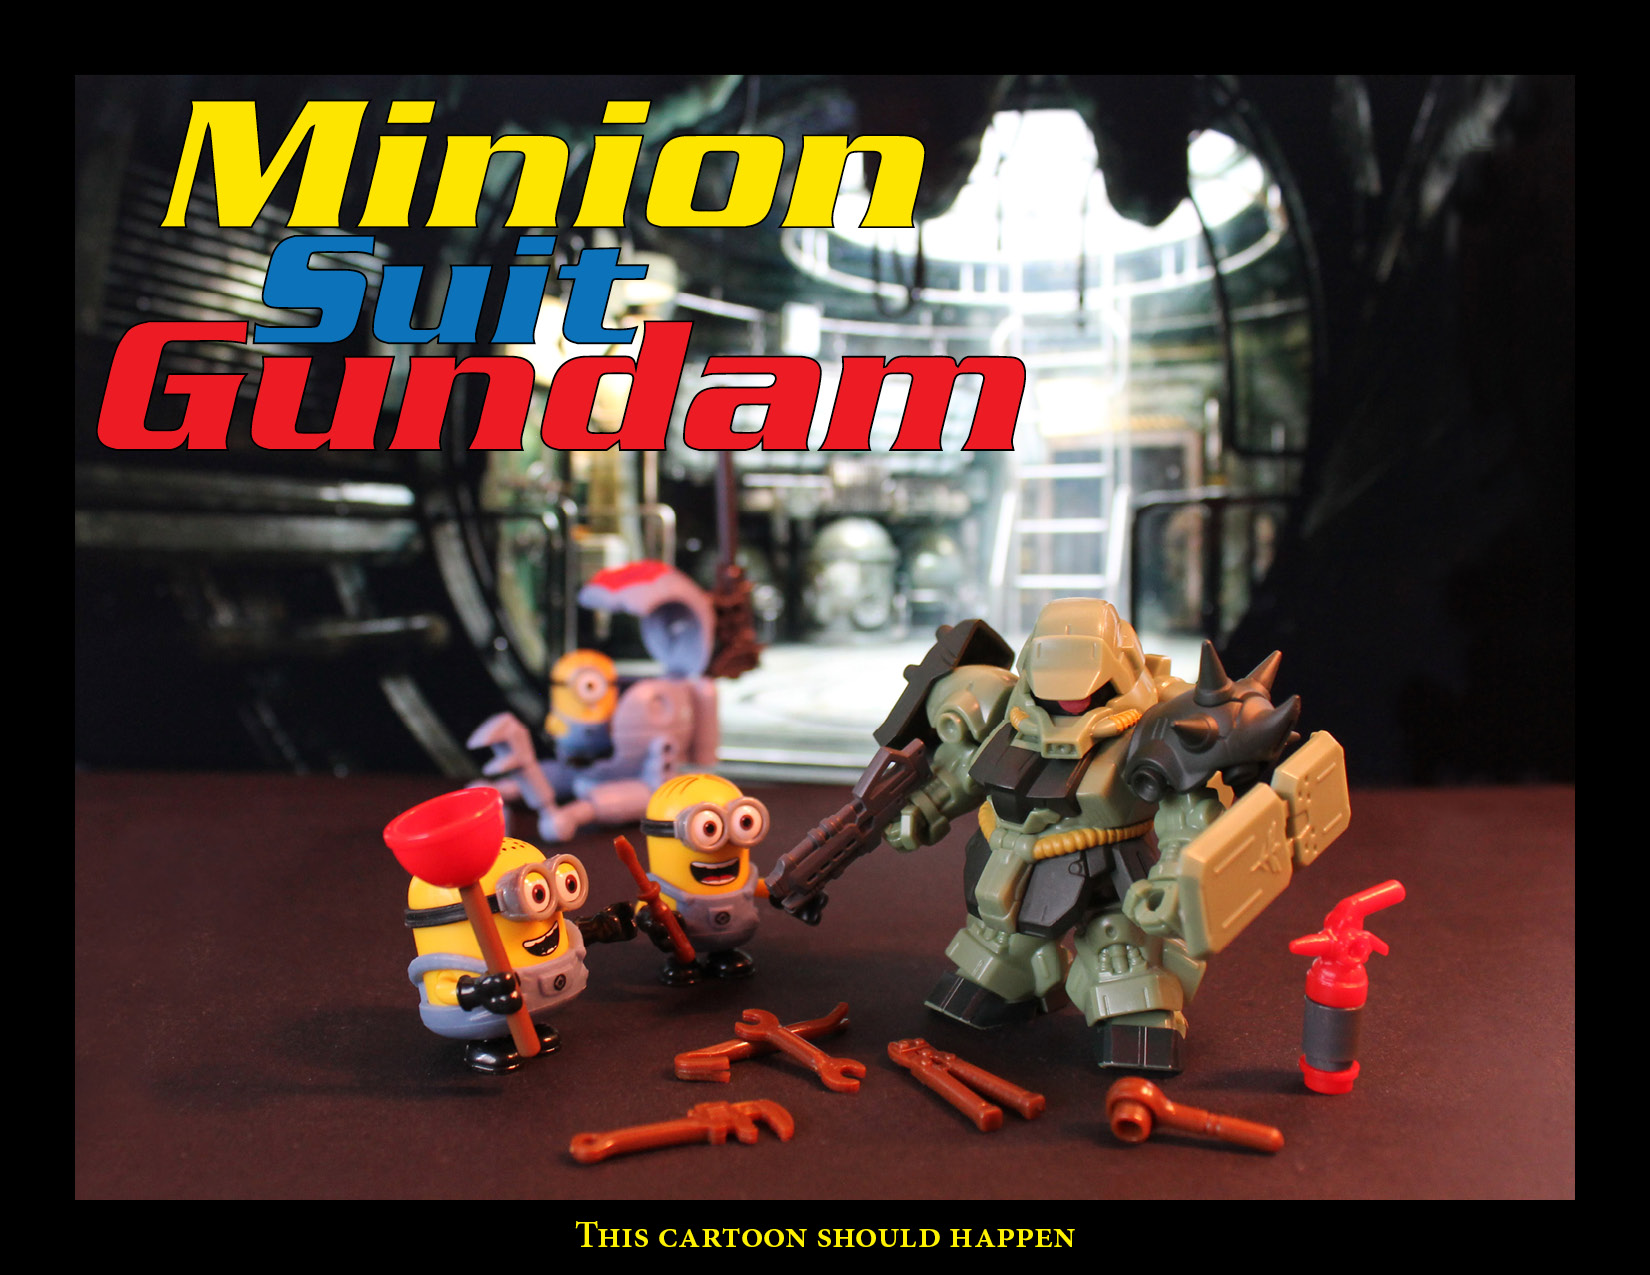 Mobile Suit Gundam and Minions